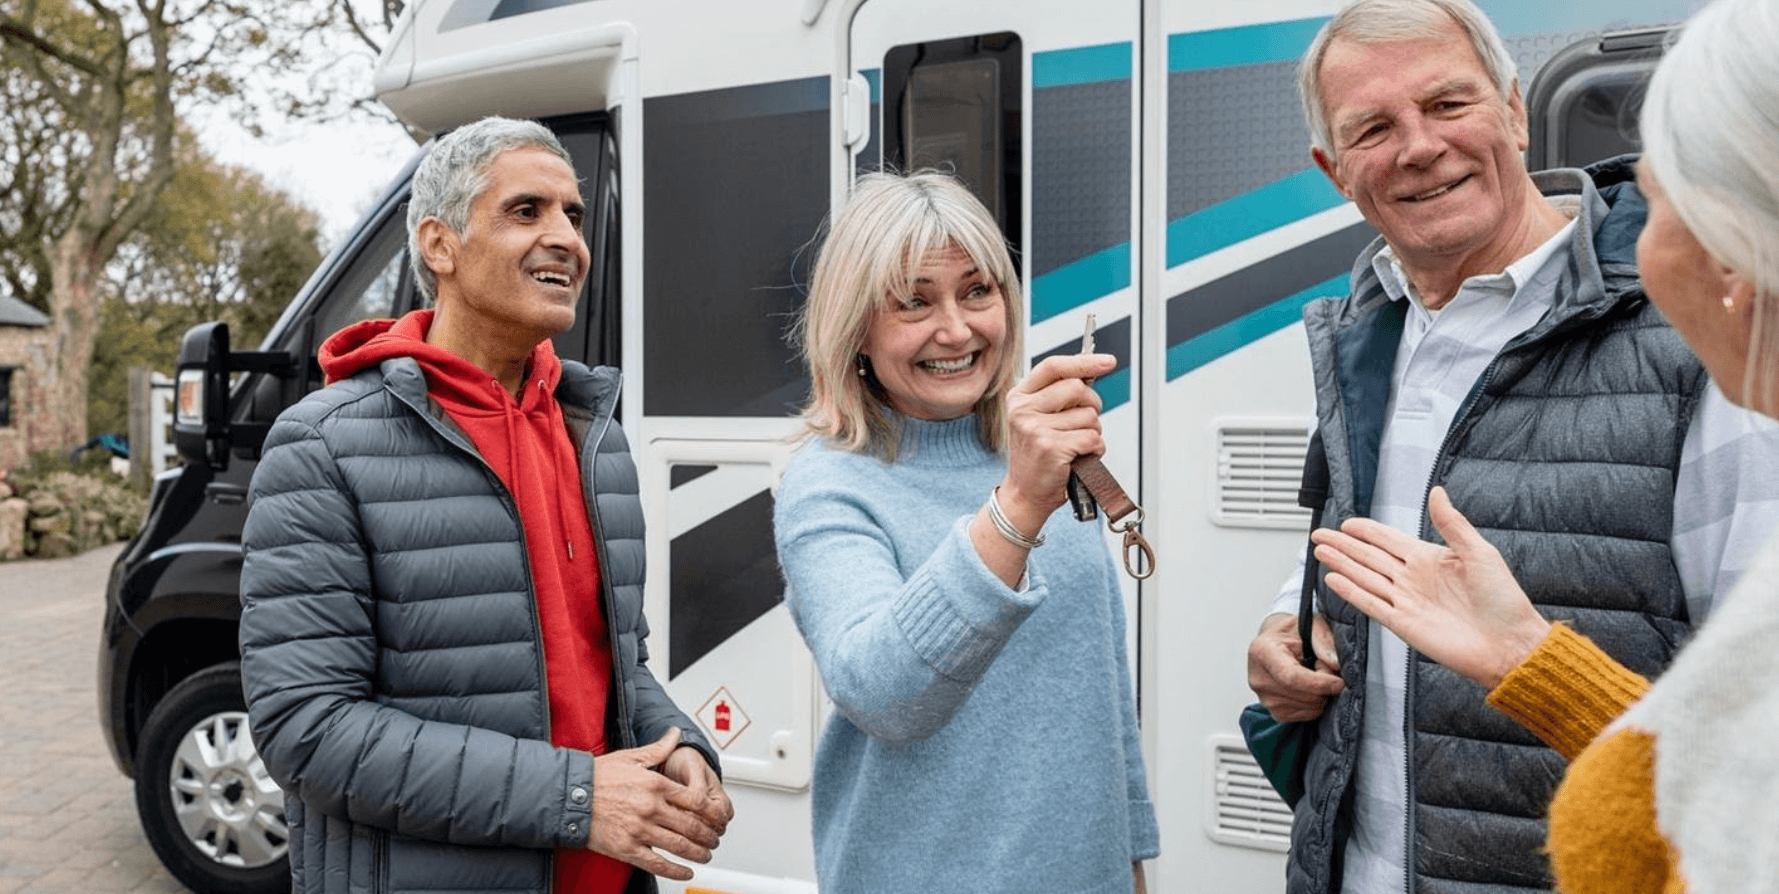 How to buy or sell an RV as a peer-to-peer transaction